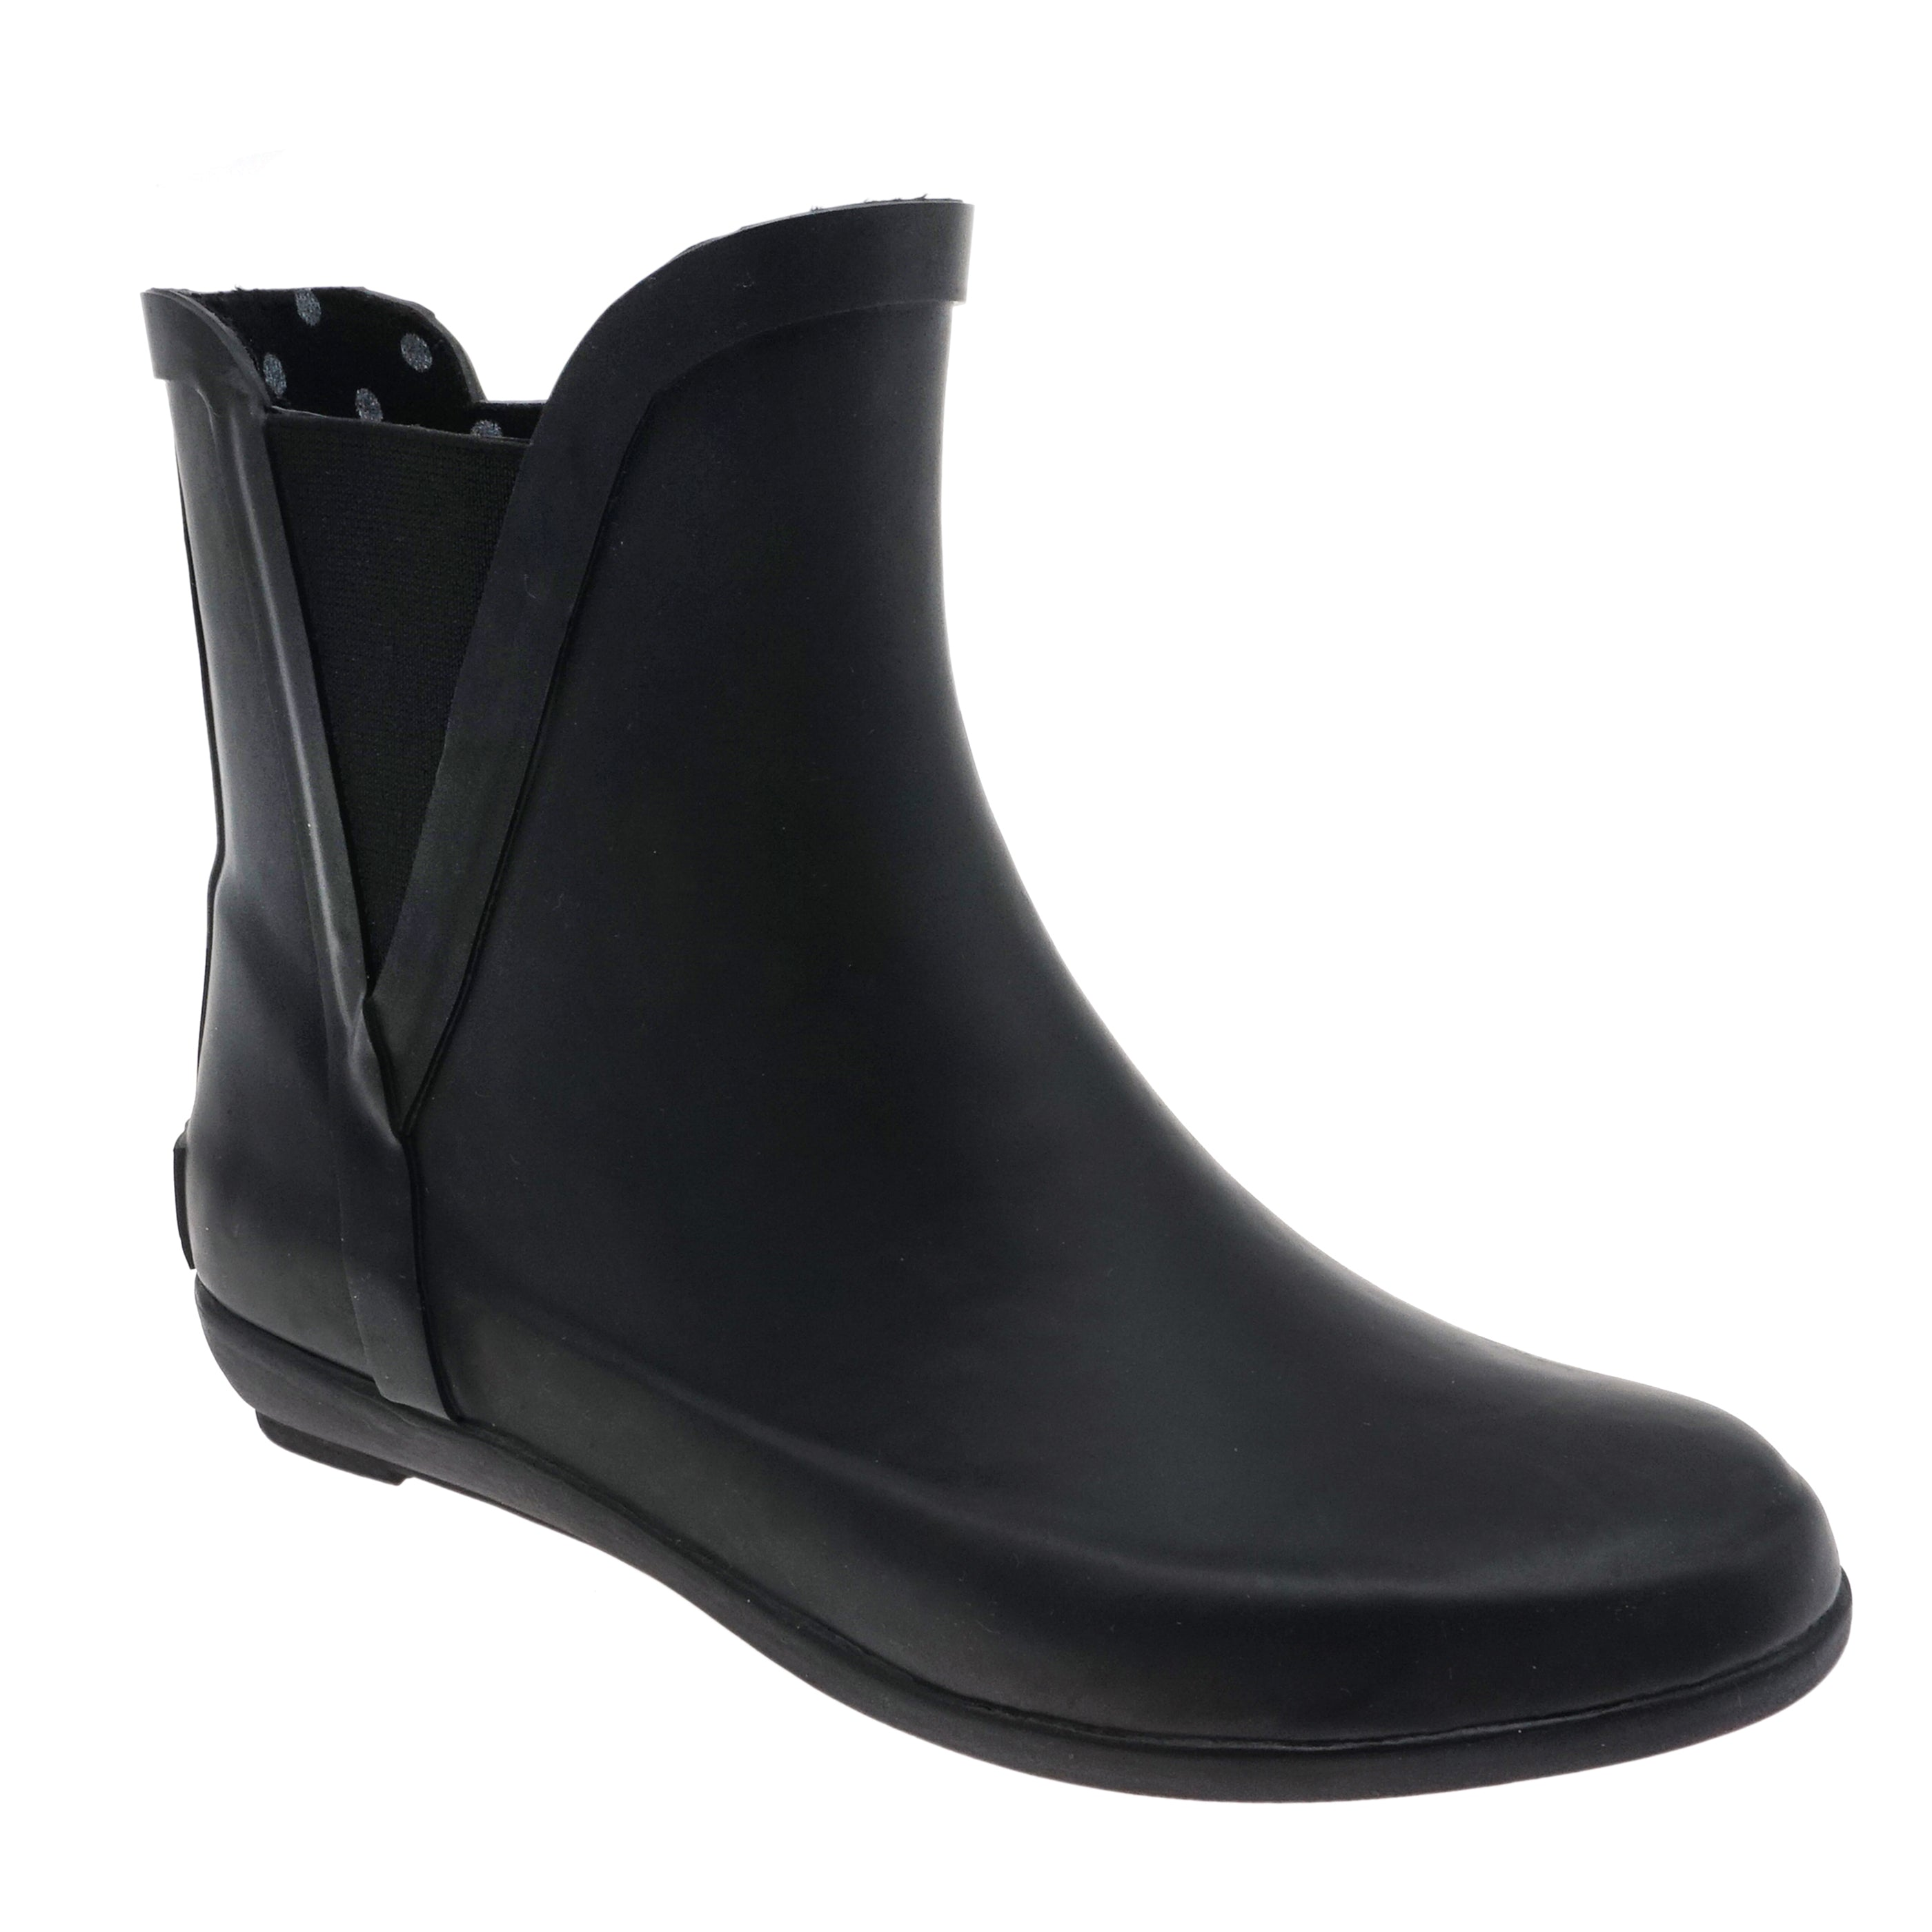 OUTWOODS Women's Sammie Waterproof Chelsea Rain Boot